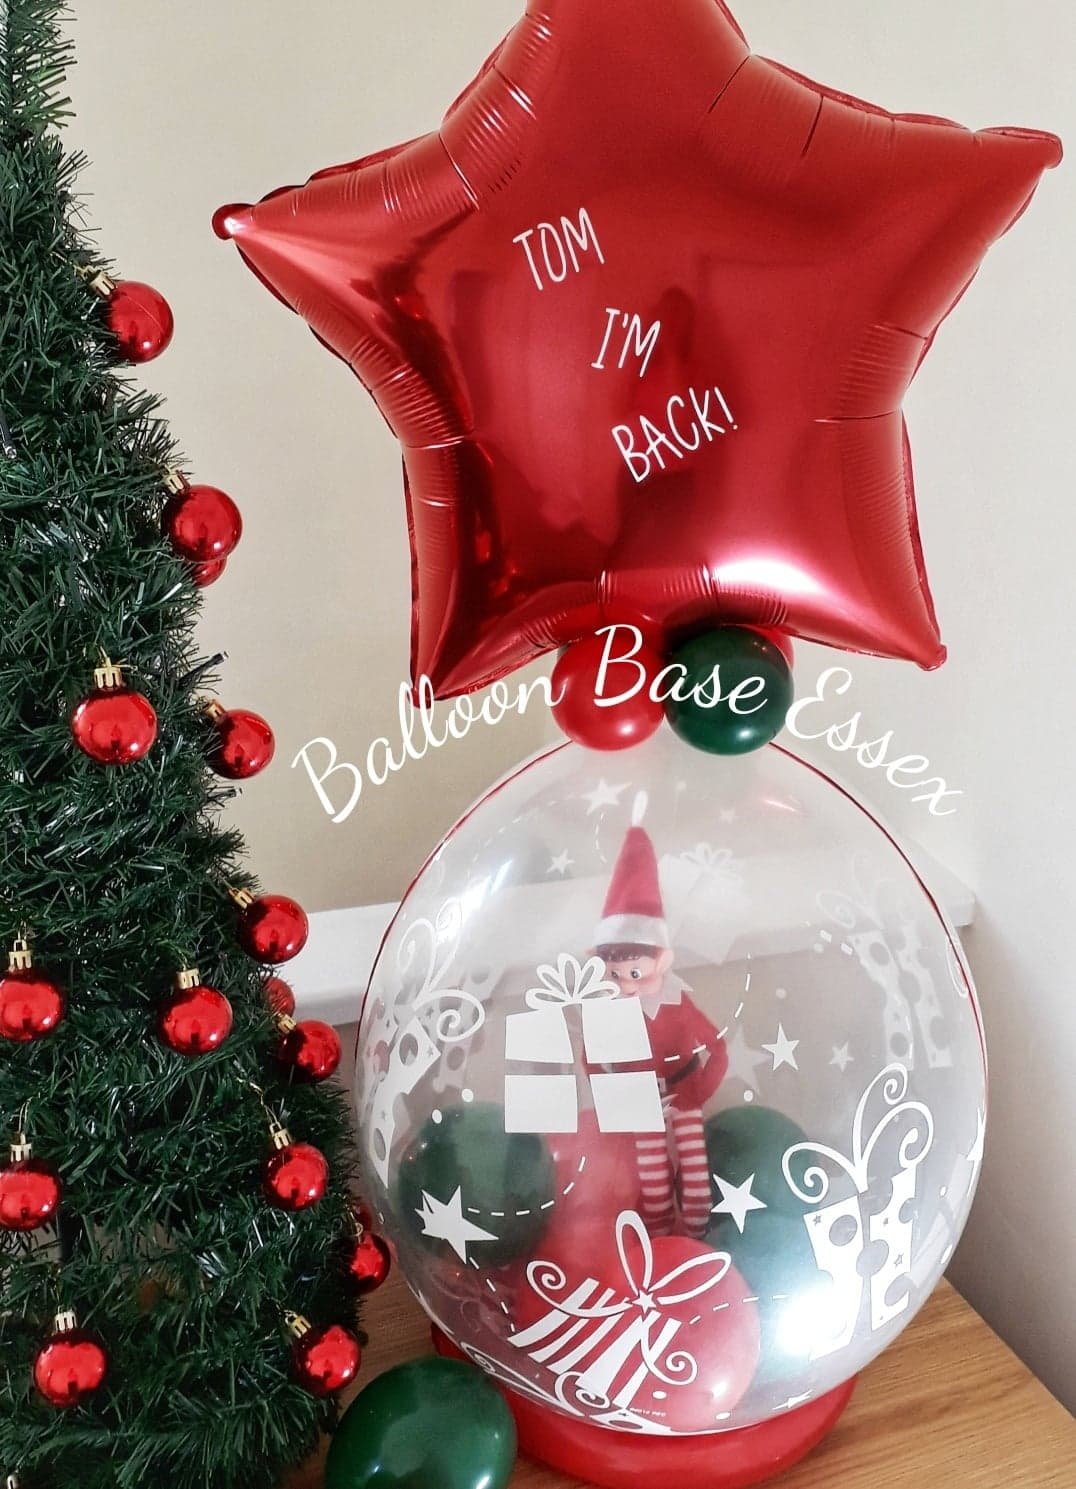 Elf inside a balloon with red star balloon on top